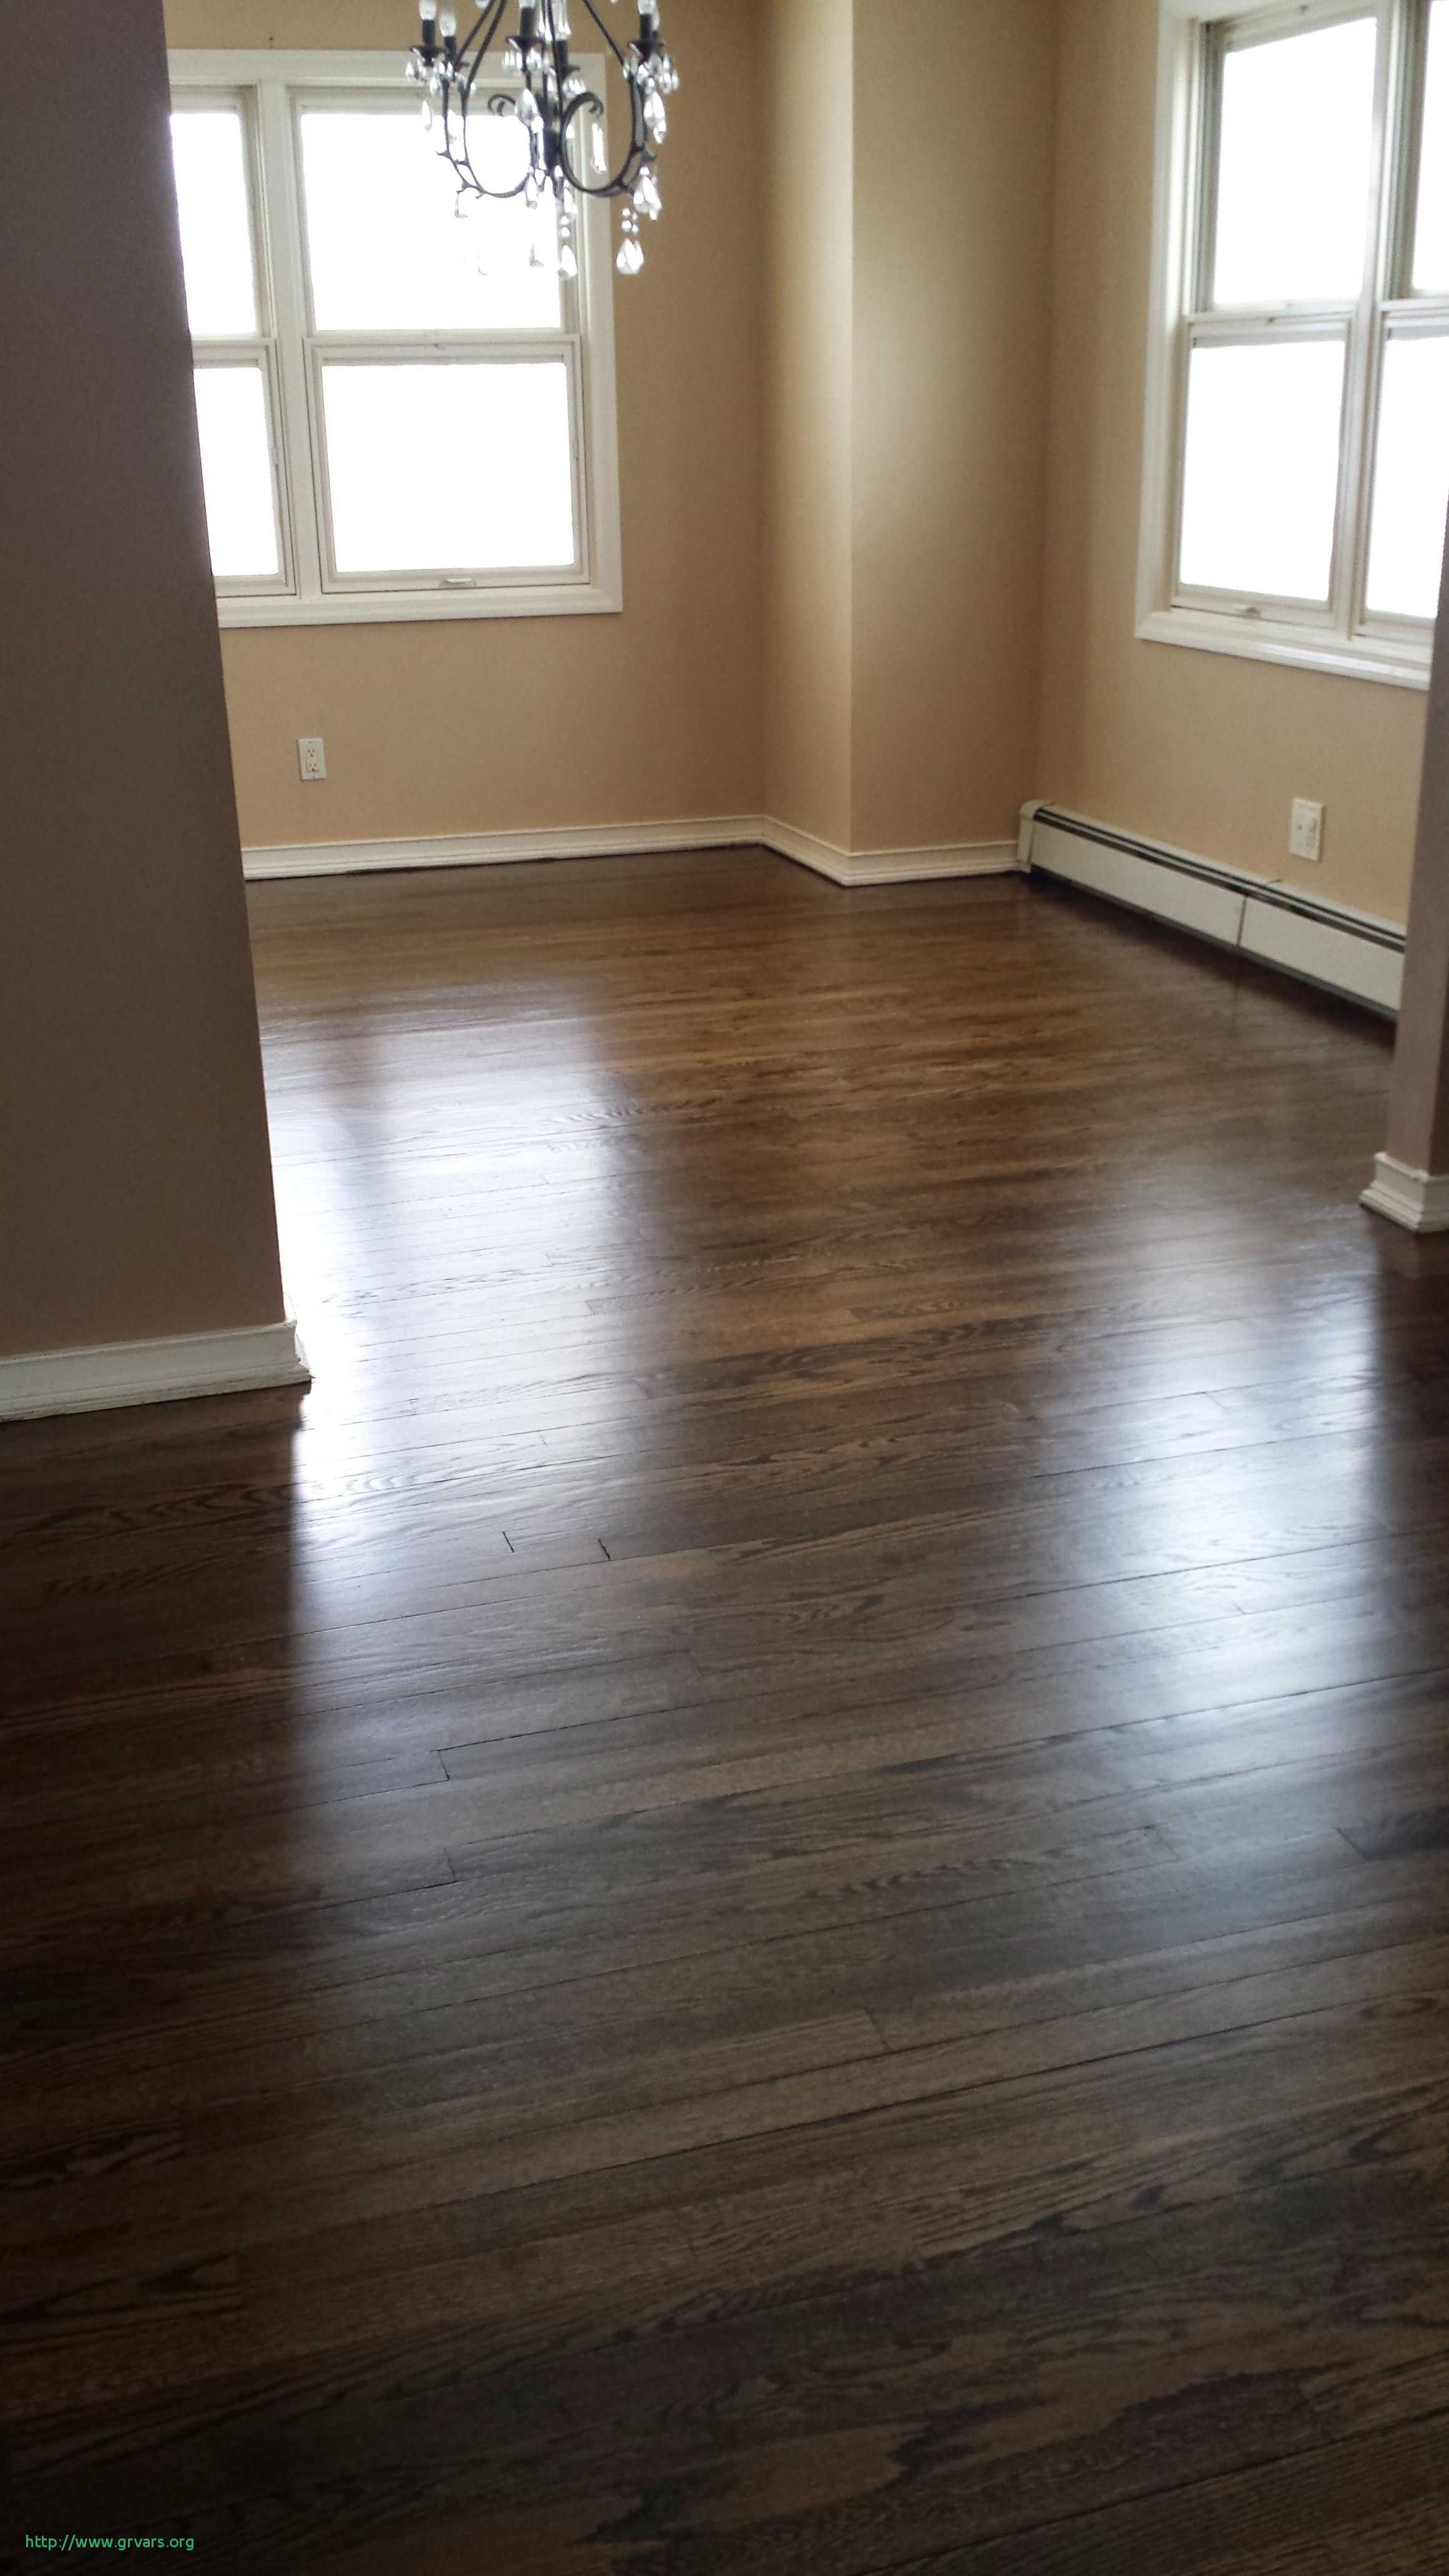 how much does hardwood flooring cost canada of 15 charmant how much is it to refinish hardwood floors ideas blog with regard to how much is it to refinish hardwood floors charmant amusing refinishingod floors diy network refinish parquet